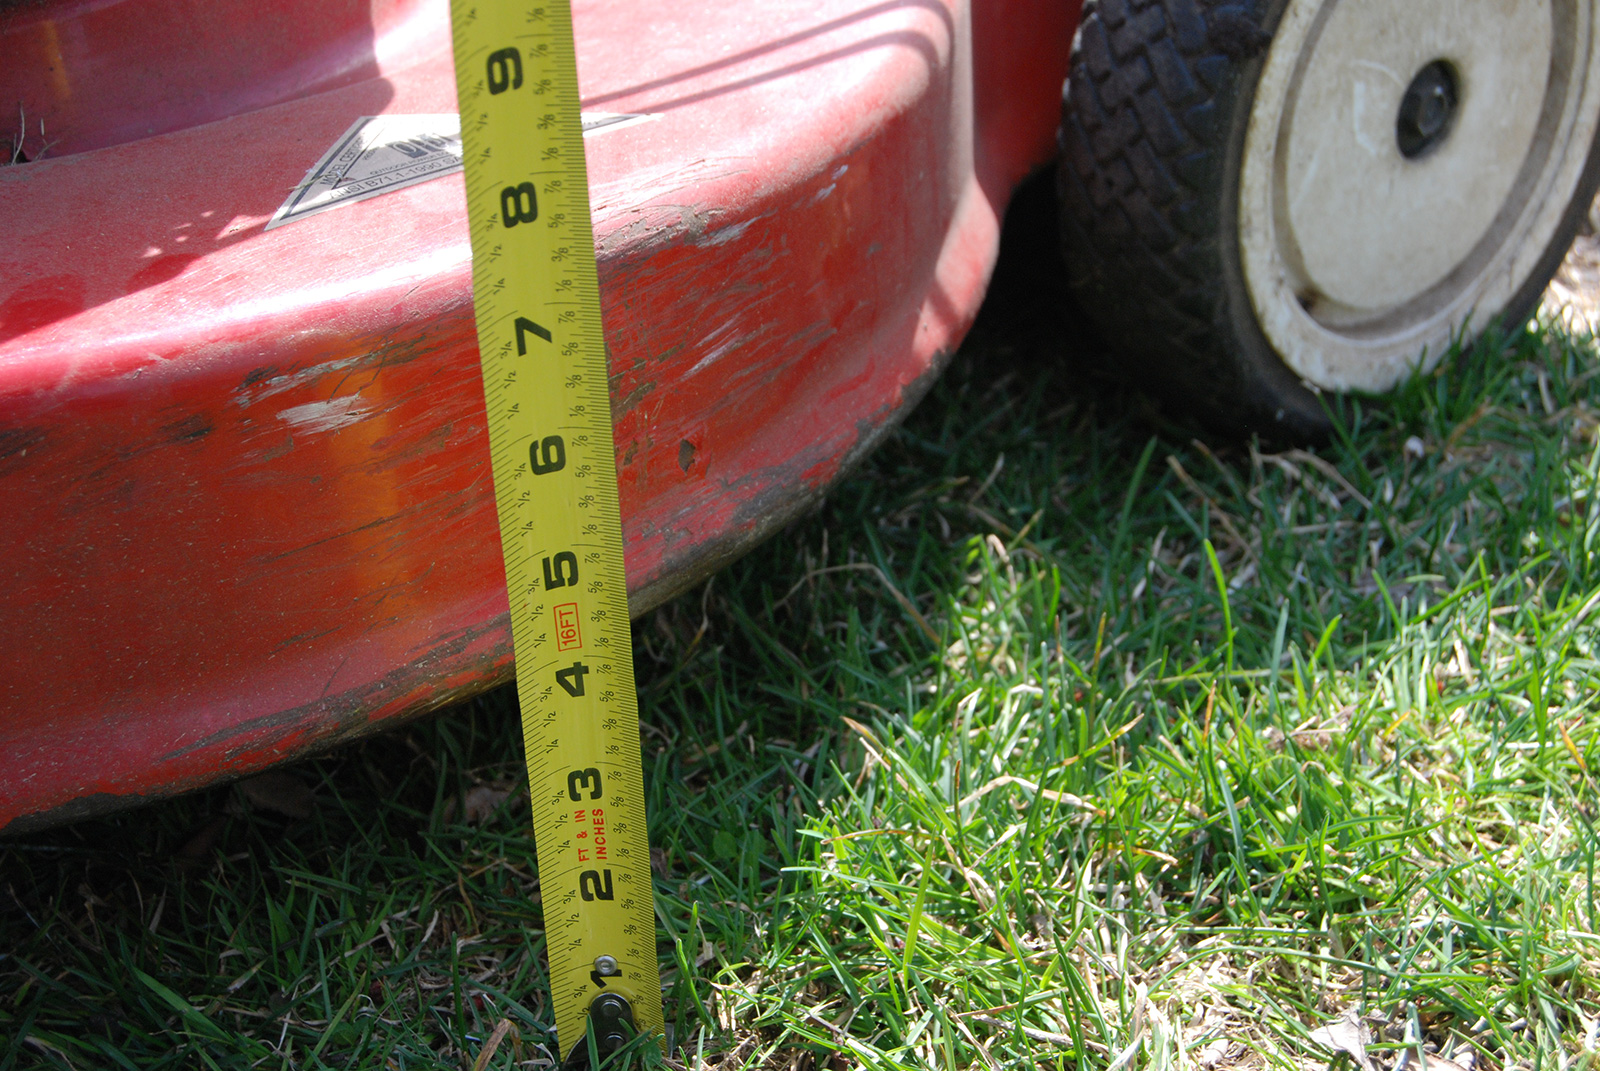 Mower deck height three and half inches with measuring tape